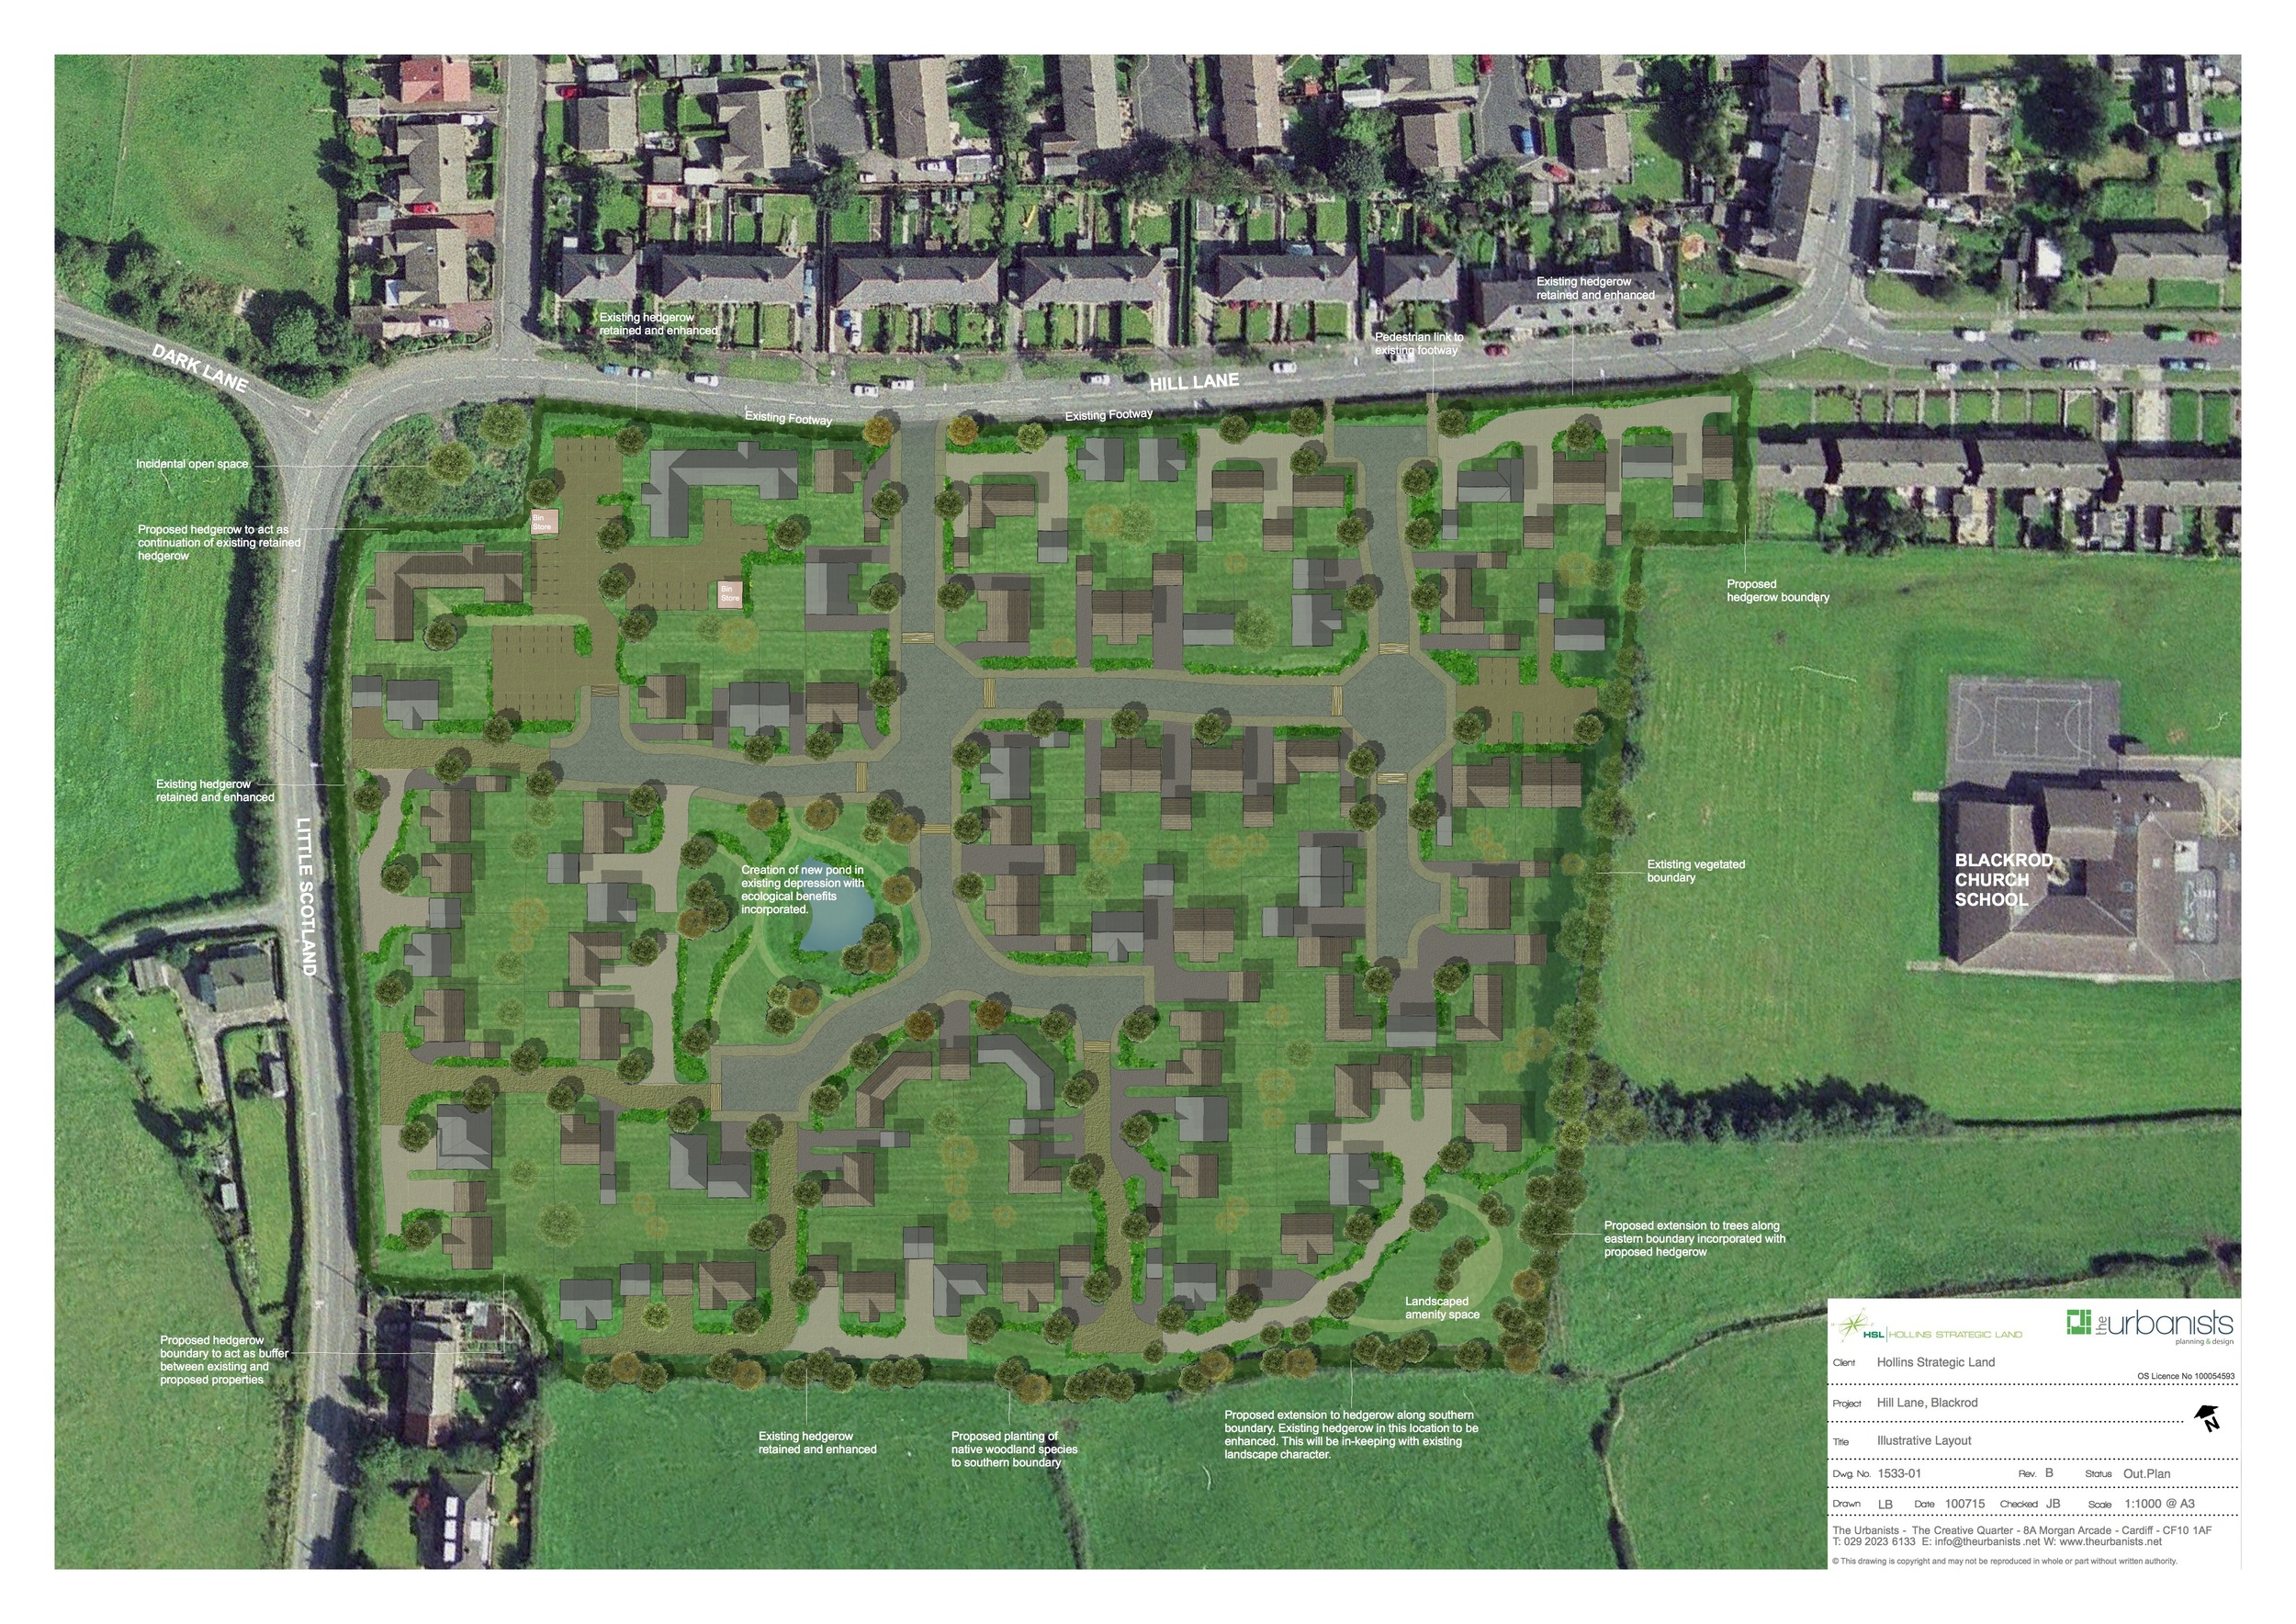 Proposed development of up to 110 dwellings on an edge of settlement site